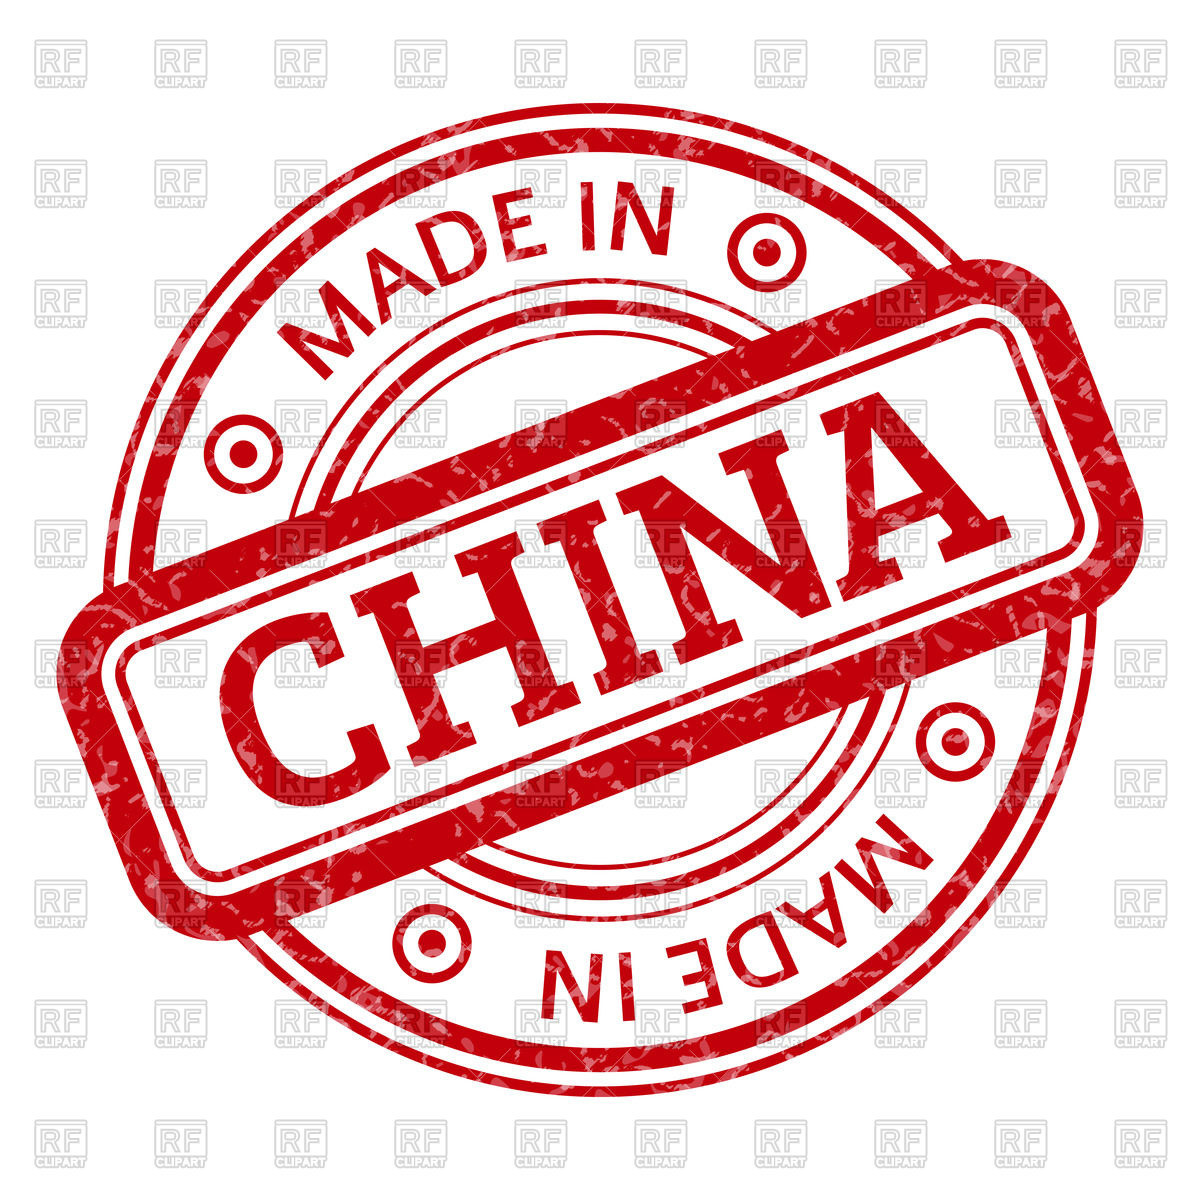 Round stamp Made in China Vector Image #67720.